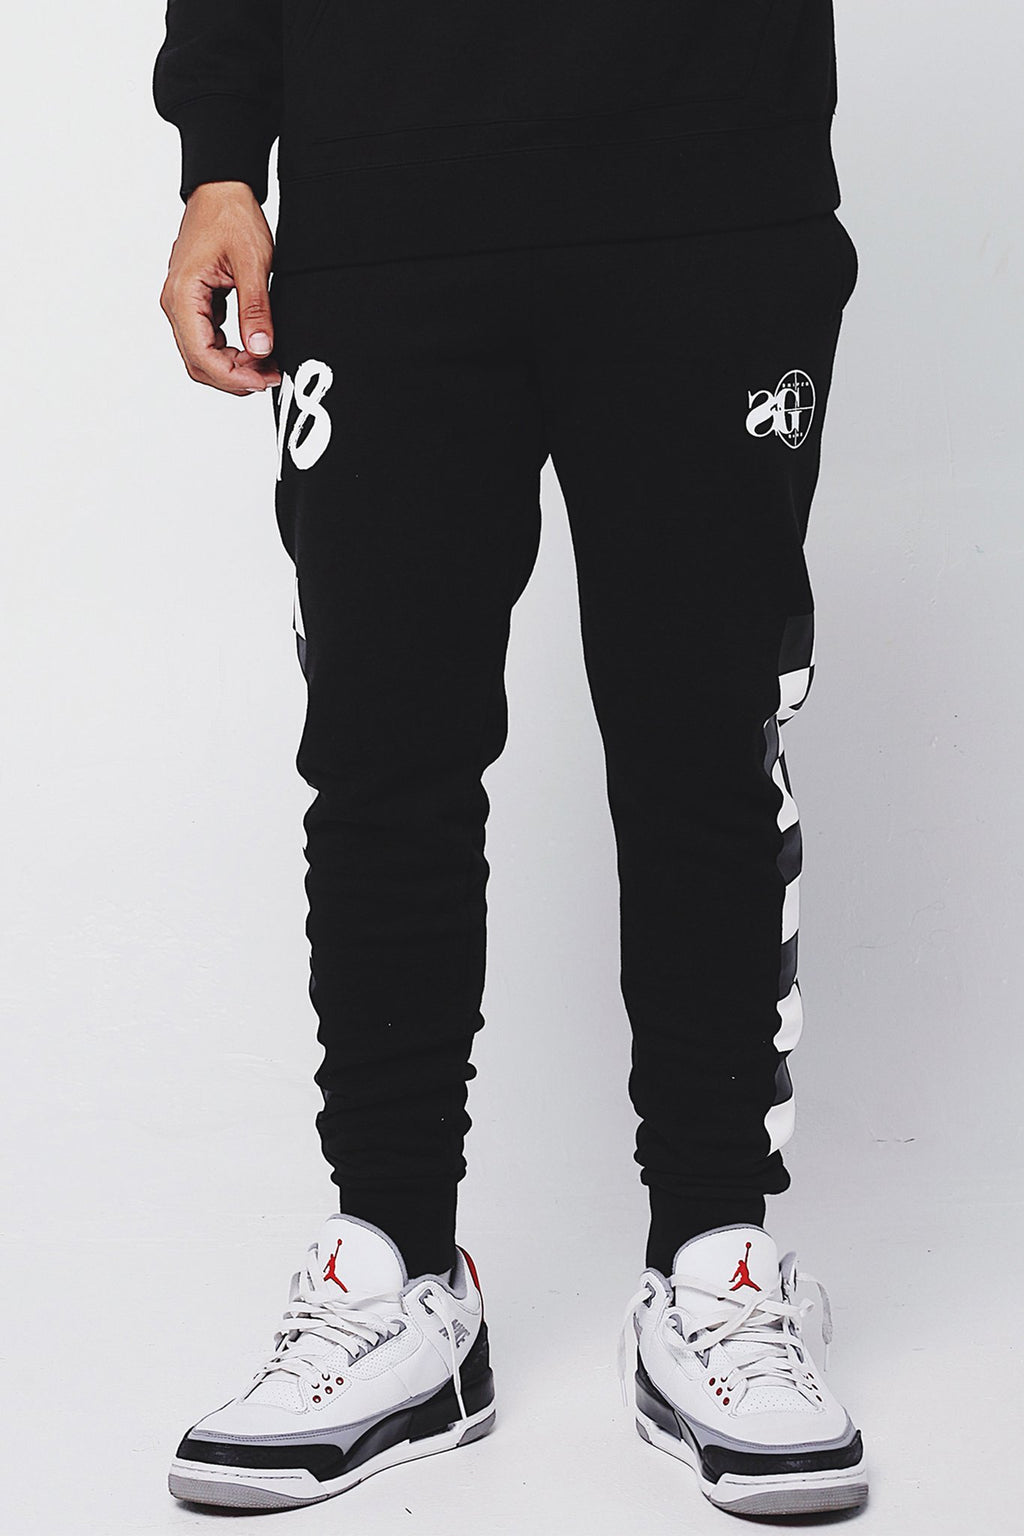 Sniper Gang On Go Jogger Sweatpants